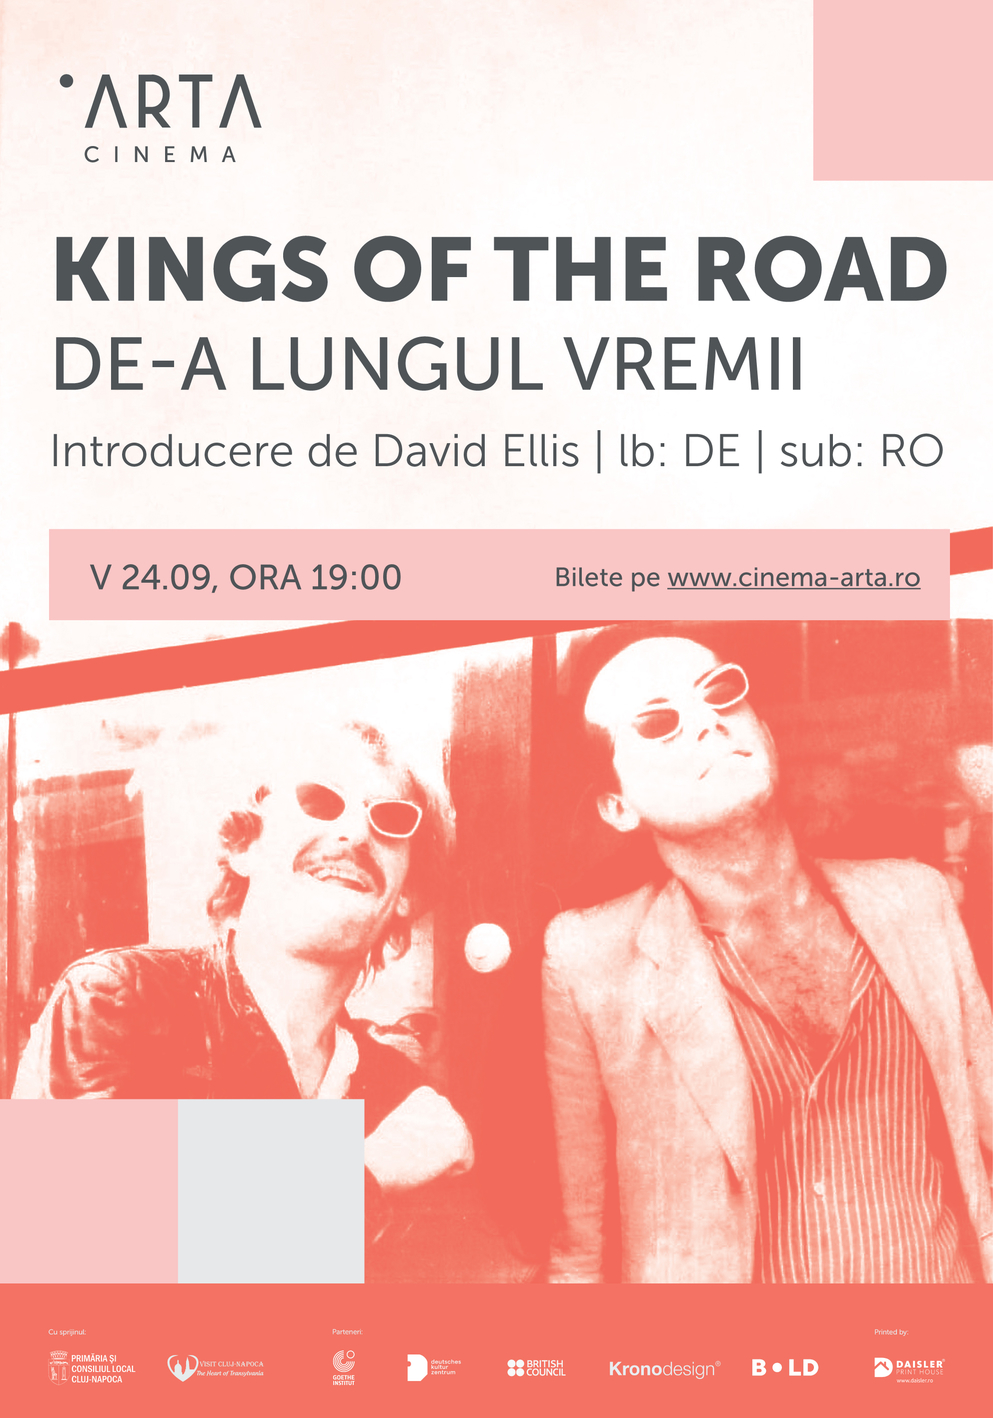 Kings of The Road / De-a lungul vremii Focus Wim Wenders